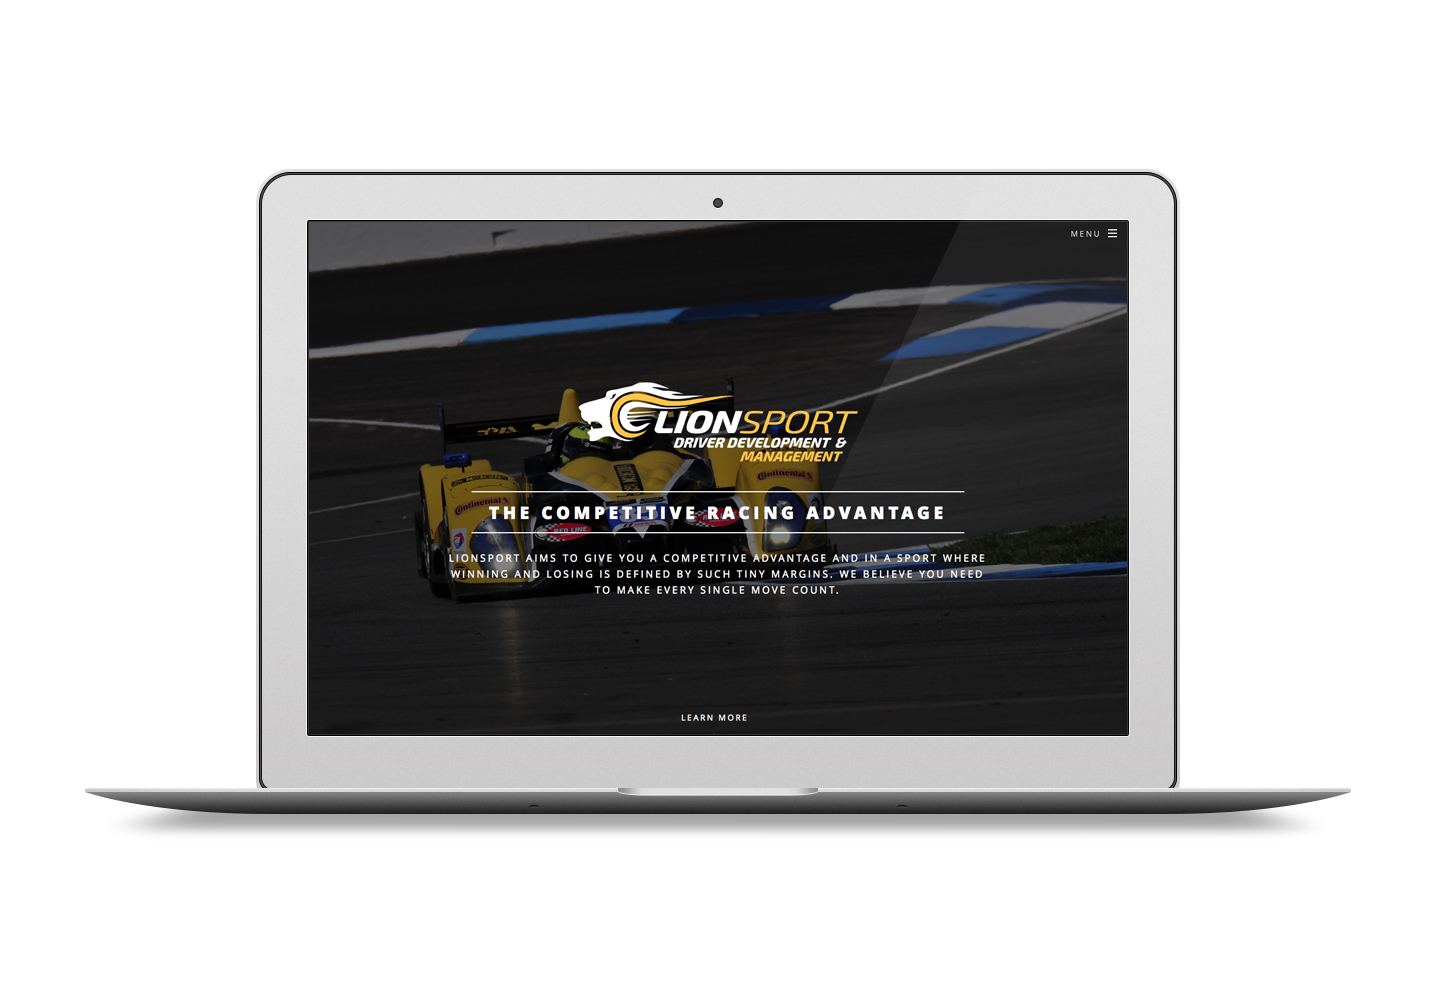 Lionsport Professional Driver Management and Coaching